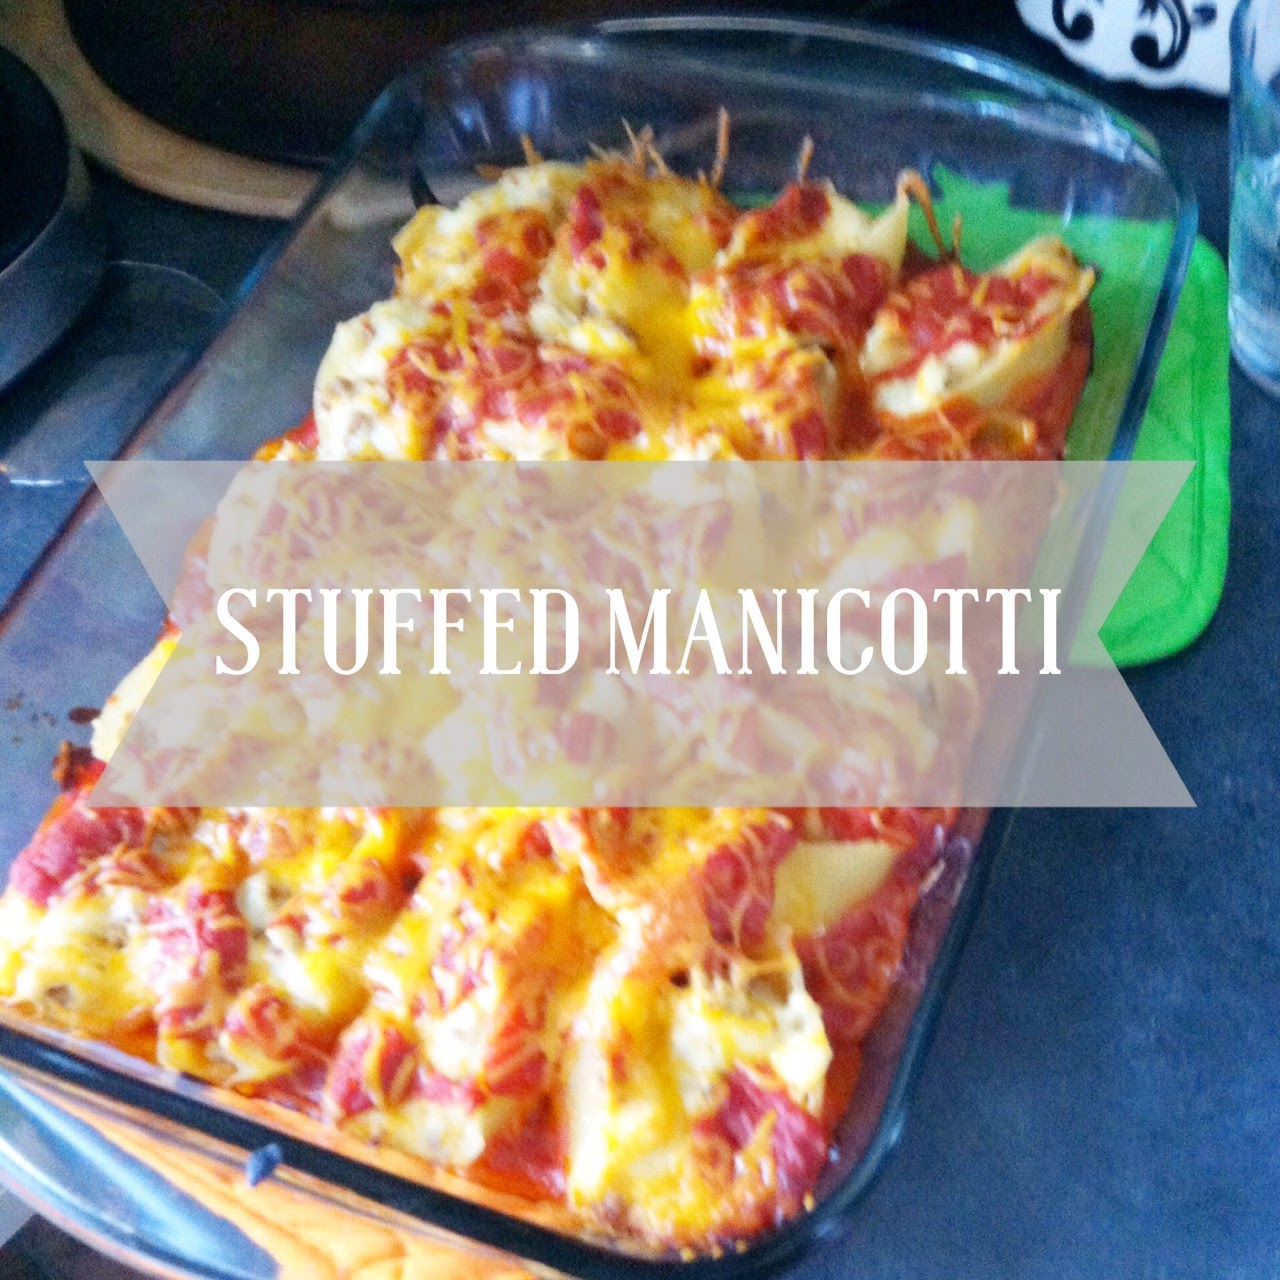 http://blissandblundersofanewlywed.blogspot.com/2014/07/bread-and-wine-project-stuffed-manicotti.html